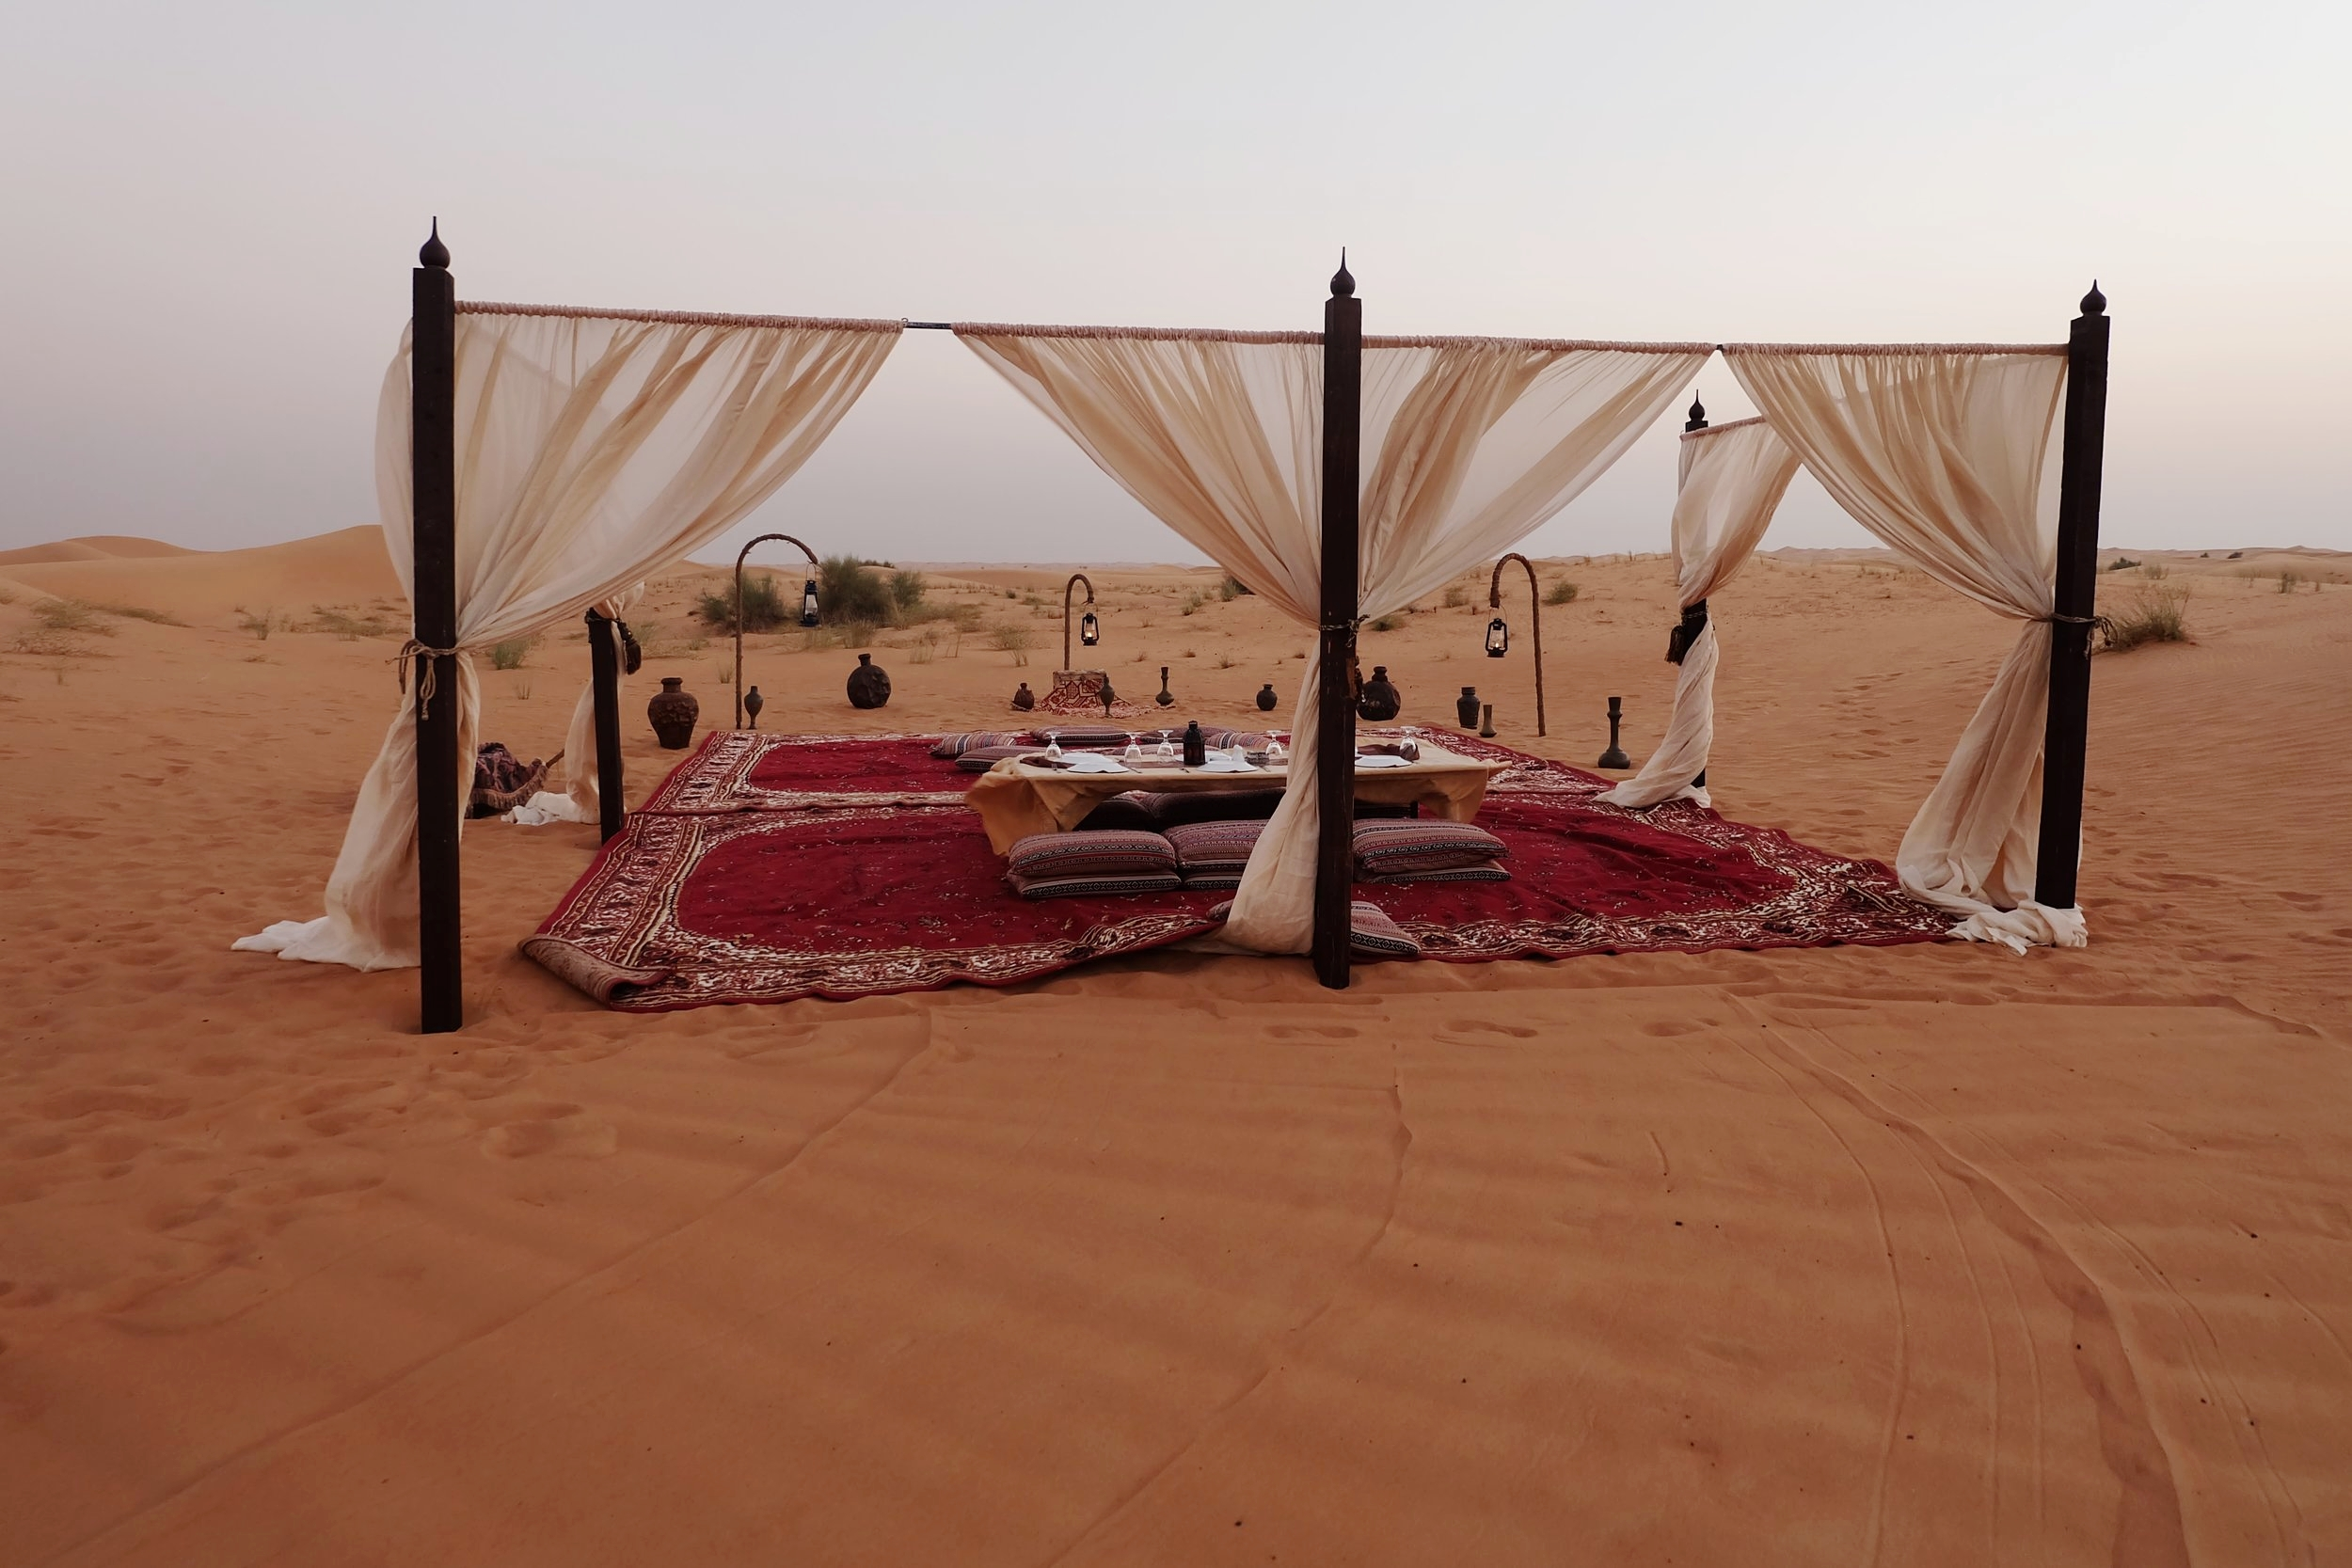 Evening in the Dubai Desert